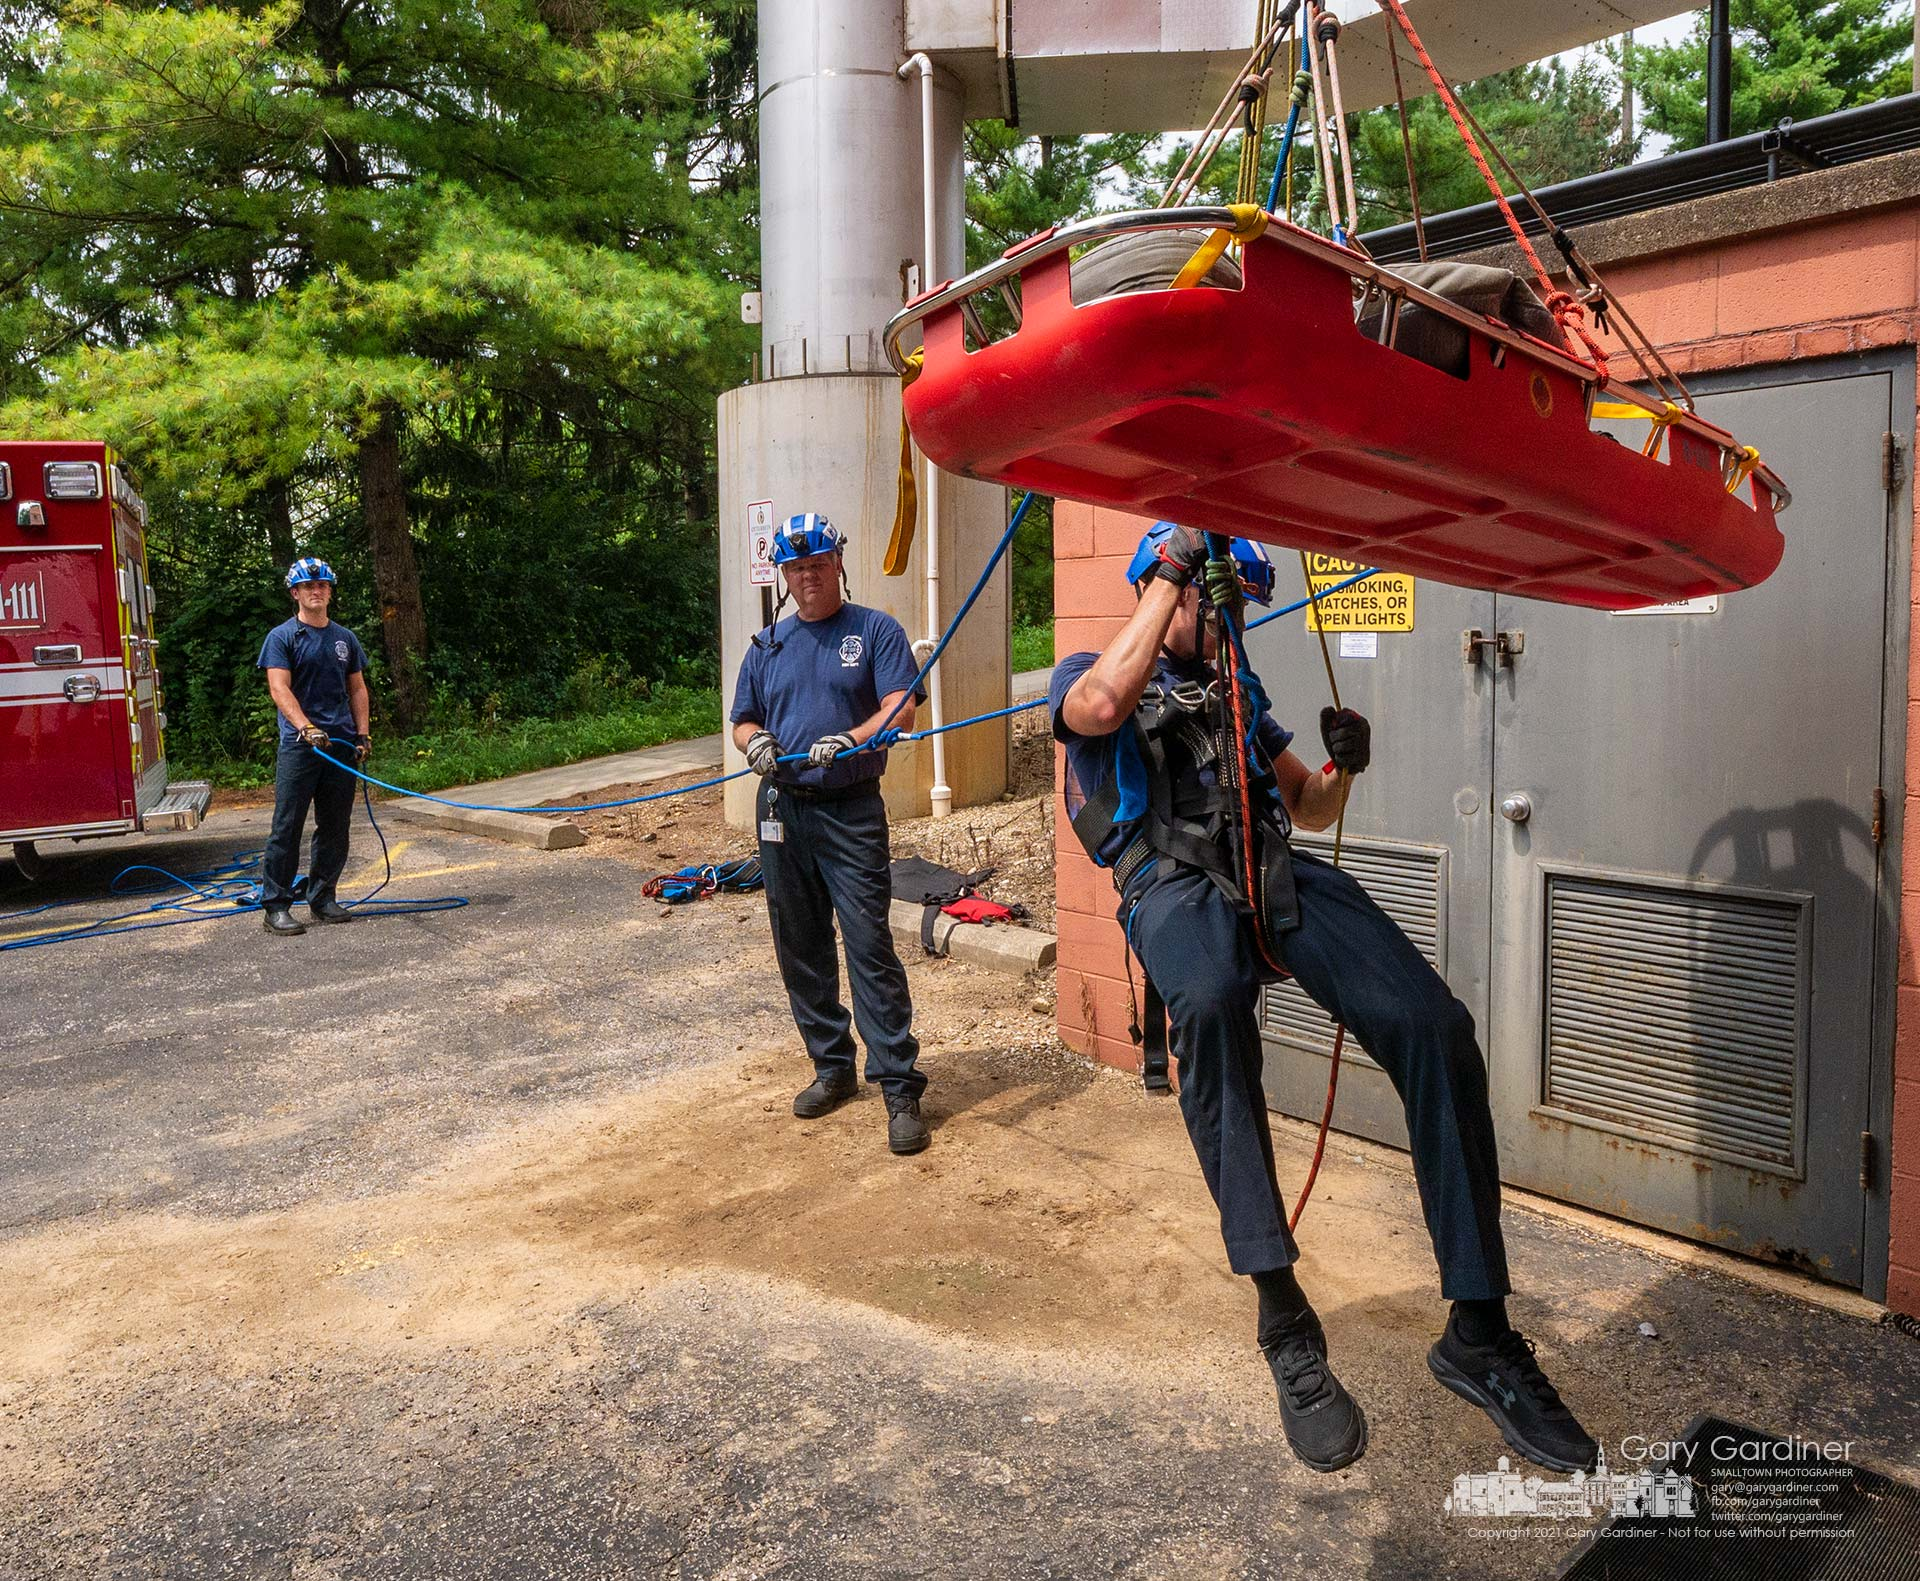 A Westerville firefighter hangs from rescue equipment attached to the top of the Otterbein University service department building during an afternoon training class. My Final Photo for Aug. 11, 2021.